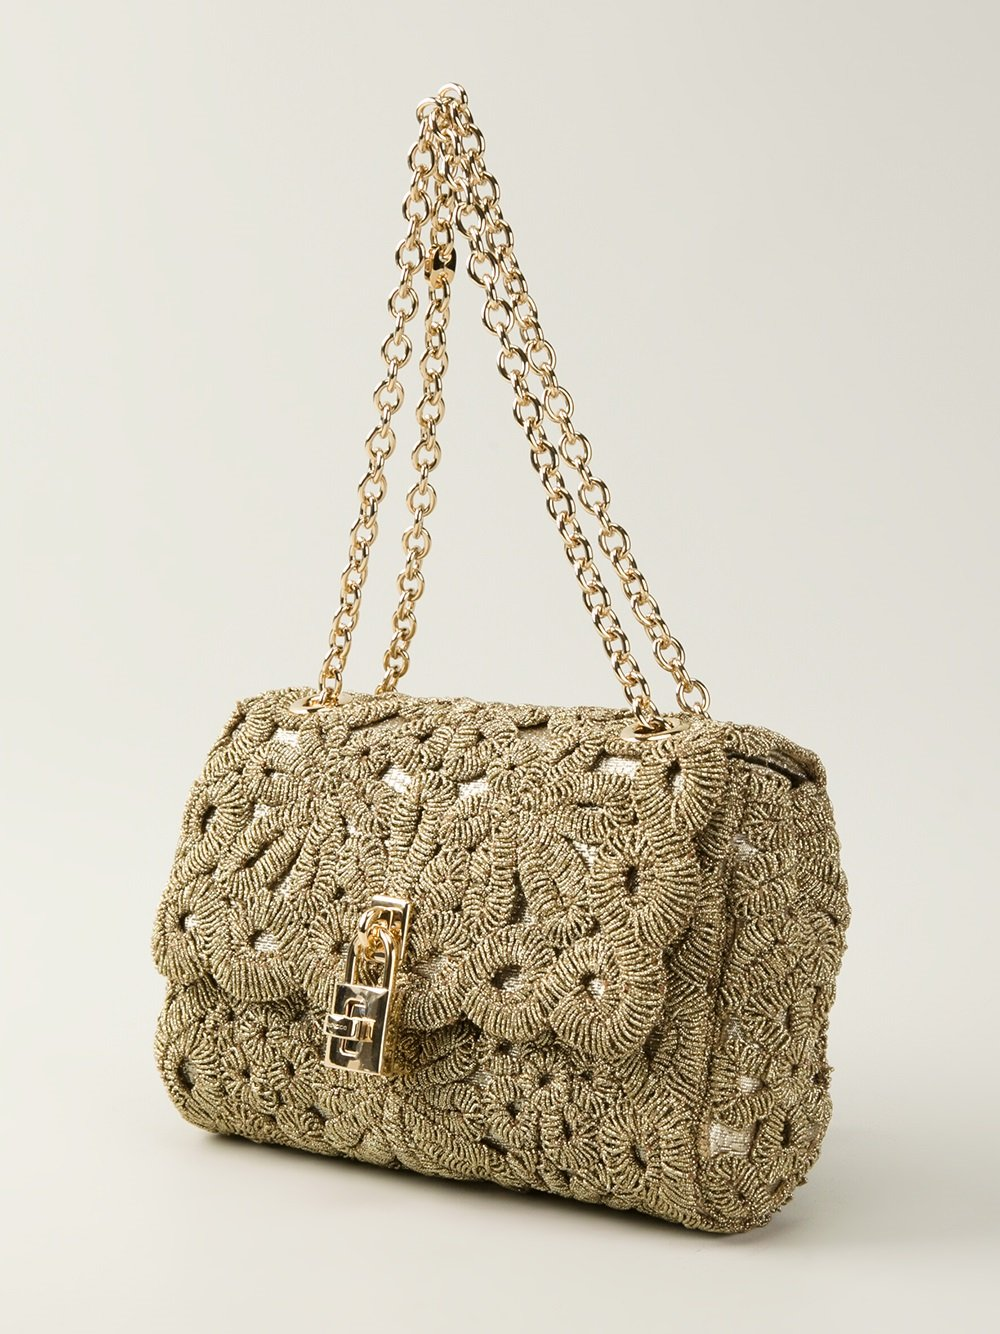 Crochet Shoulder Bag : Dolce & gabbana Crochet Padlock Shoulder Bag in Metallic Lyst